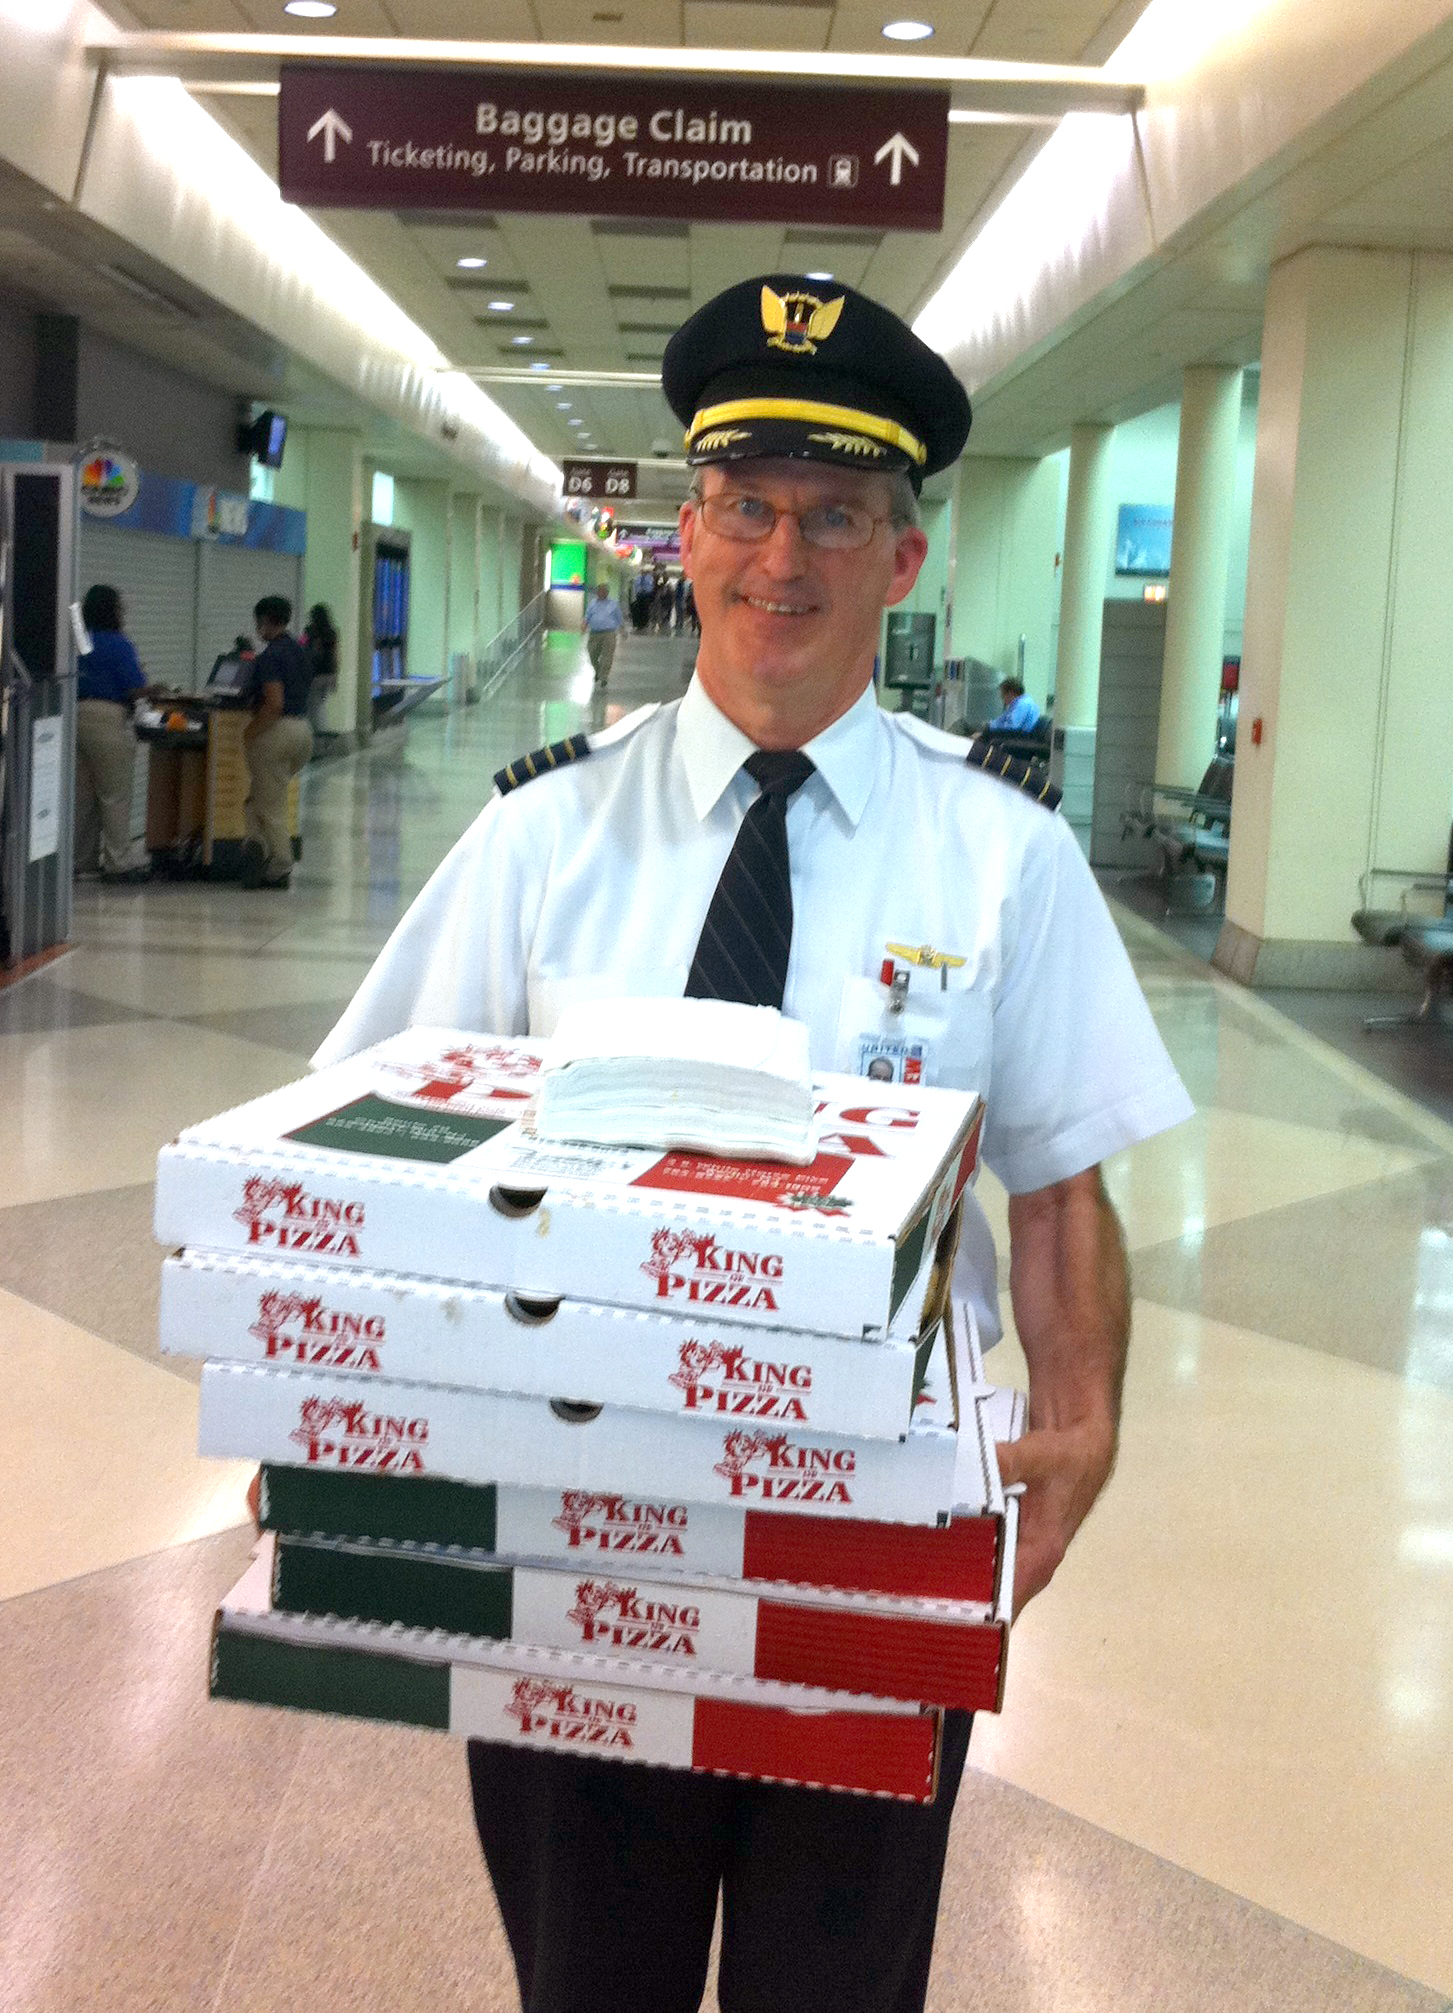 Capt. Denny Flanagan delivers pizza to delayed passengers in Philadelphia in December 2013.  Photo courtesy of United Airlines.